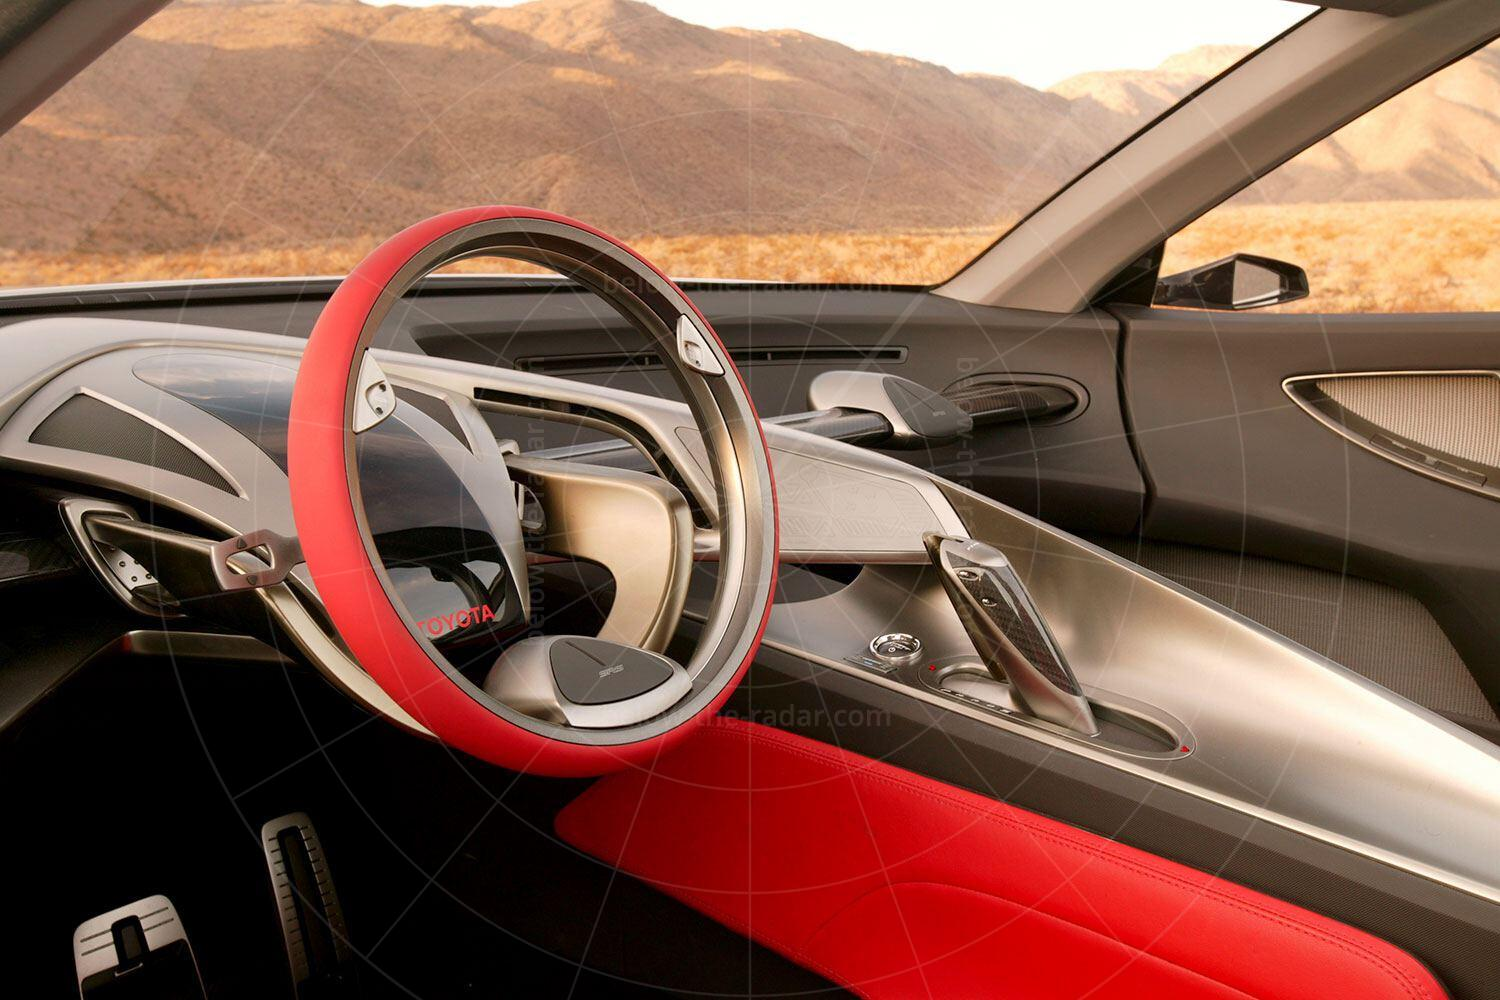 Toyota FT-HS concept dashboard Pic: Toyota | Toyota FT-HS concept dashboard